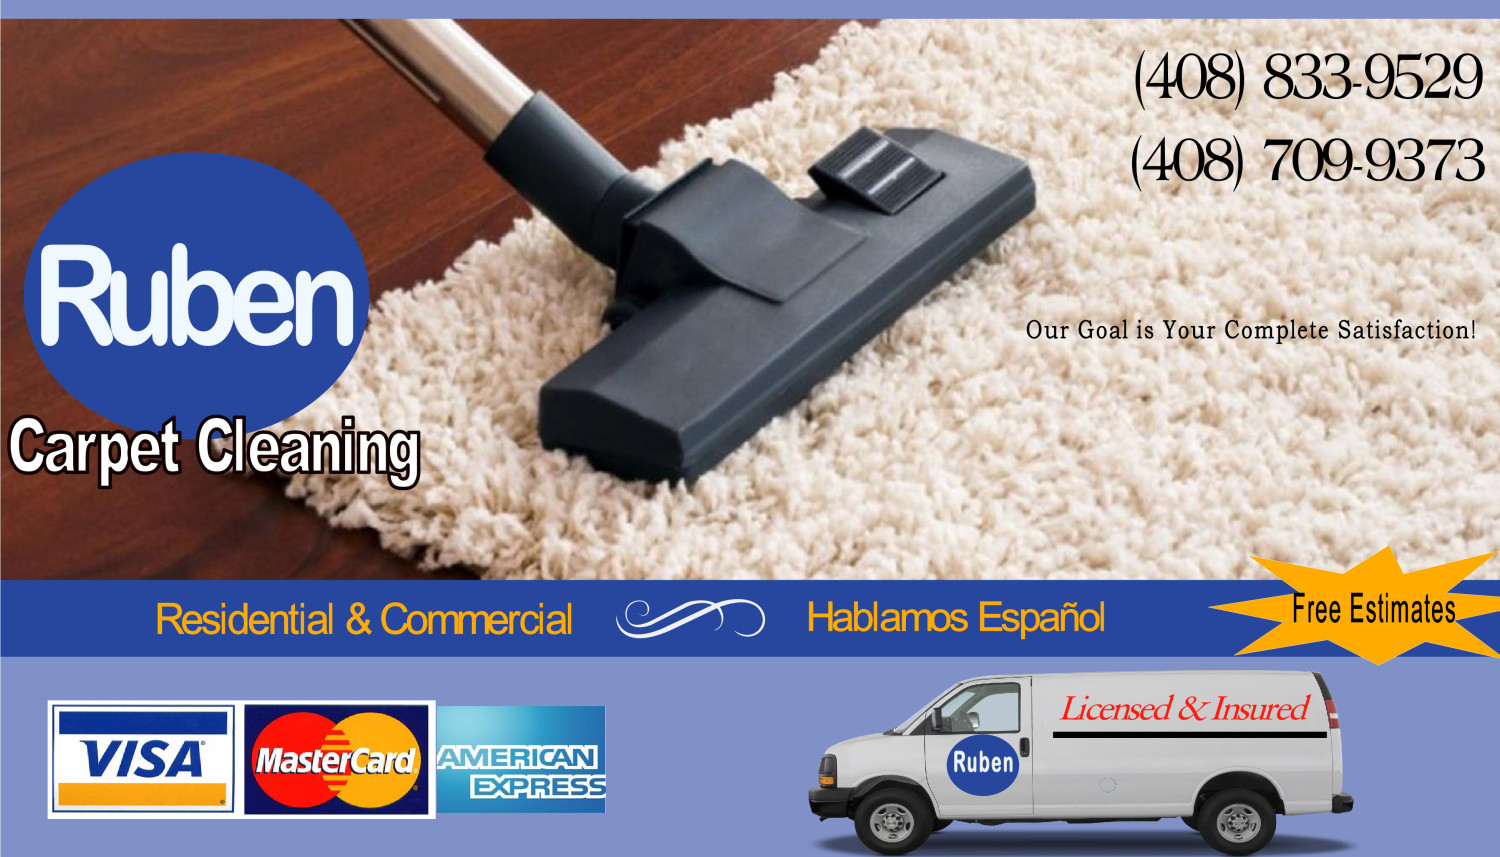 Ruben Carpet Cleaning Bay Area